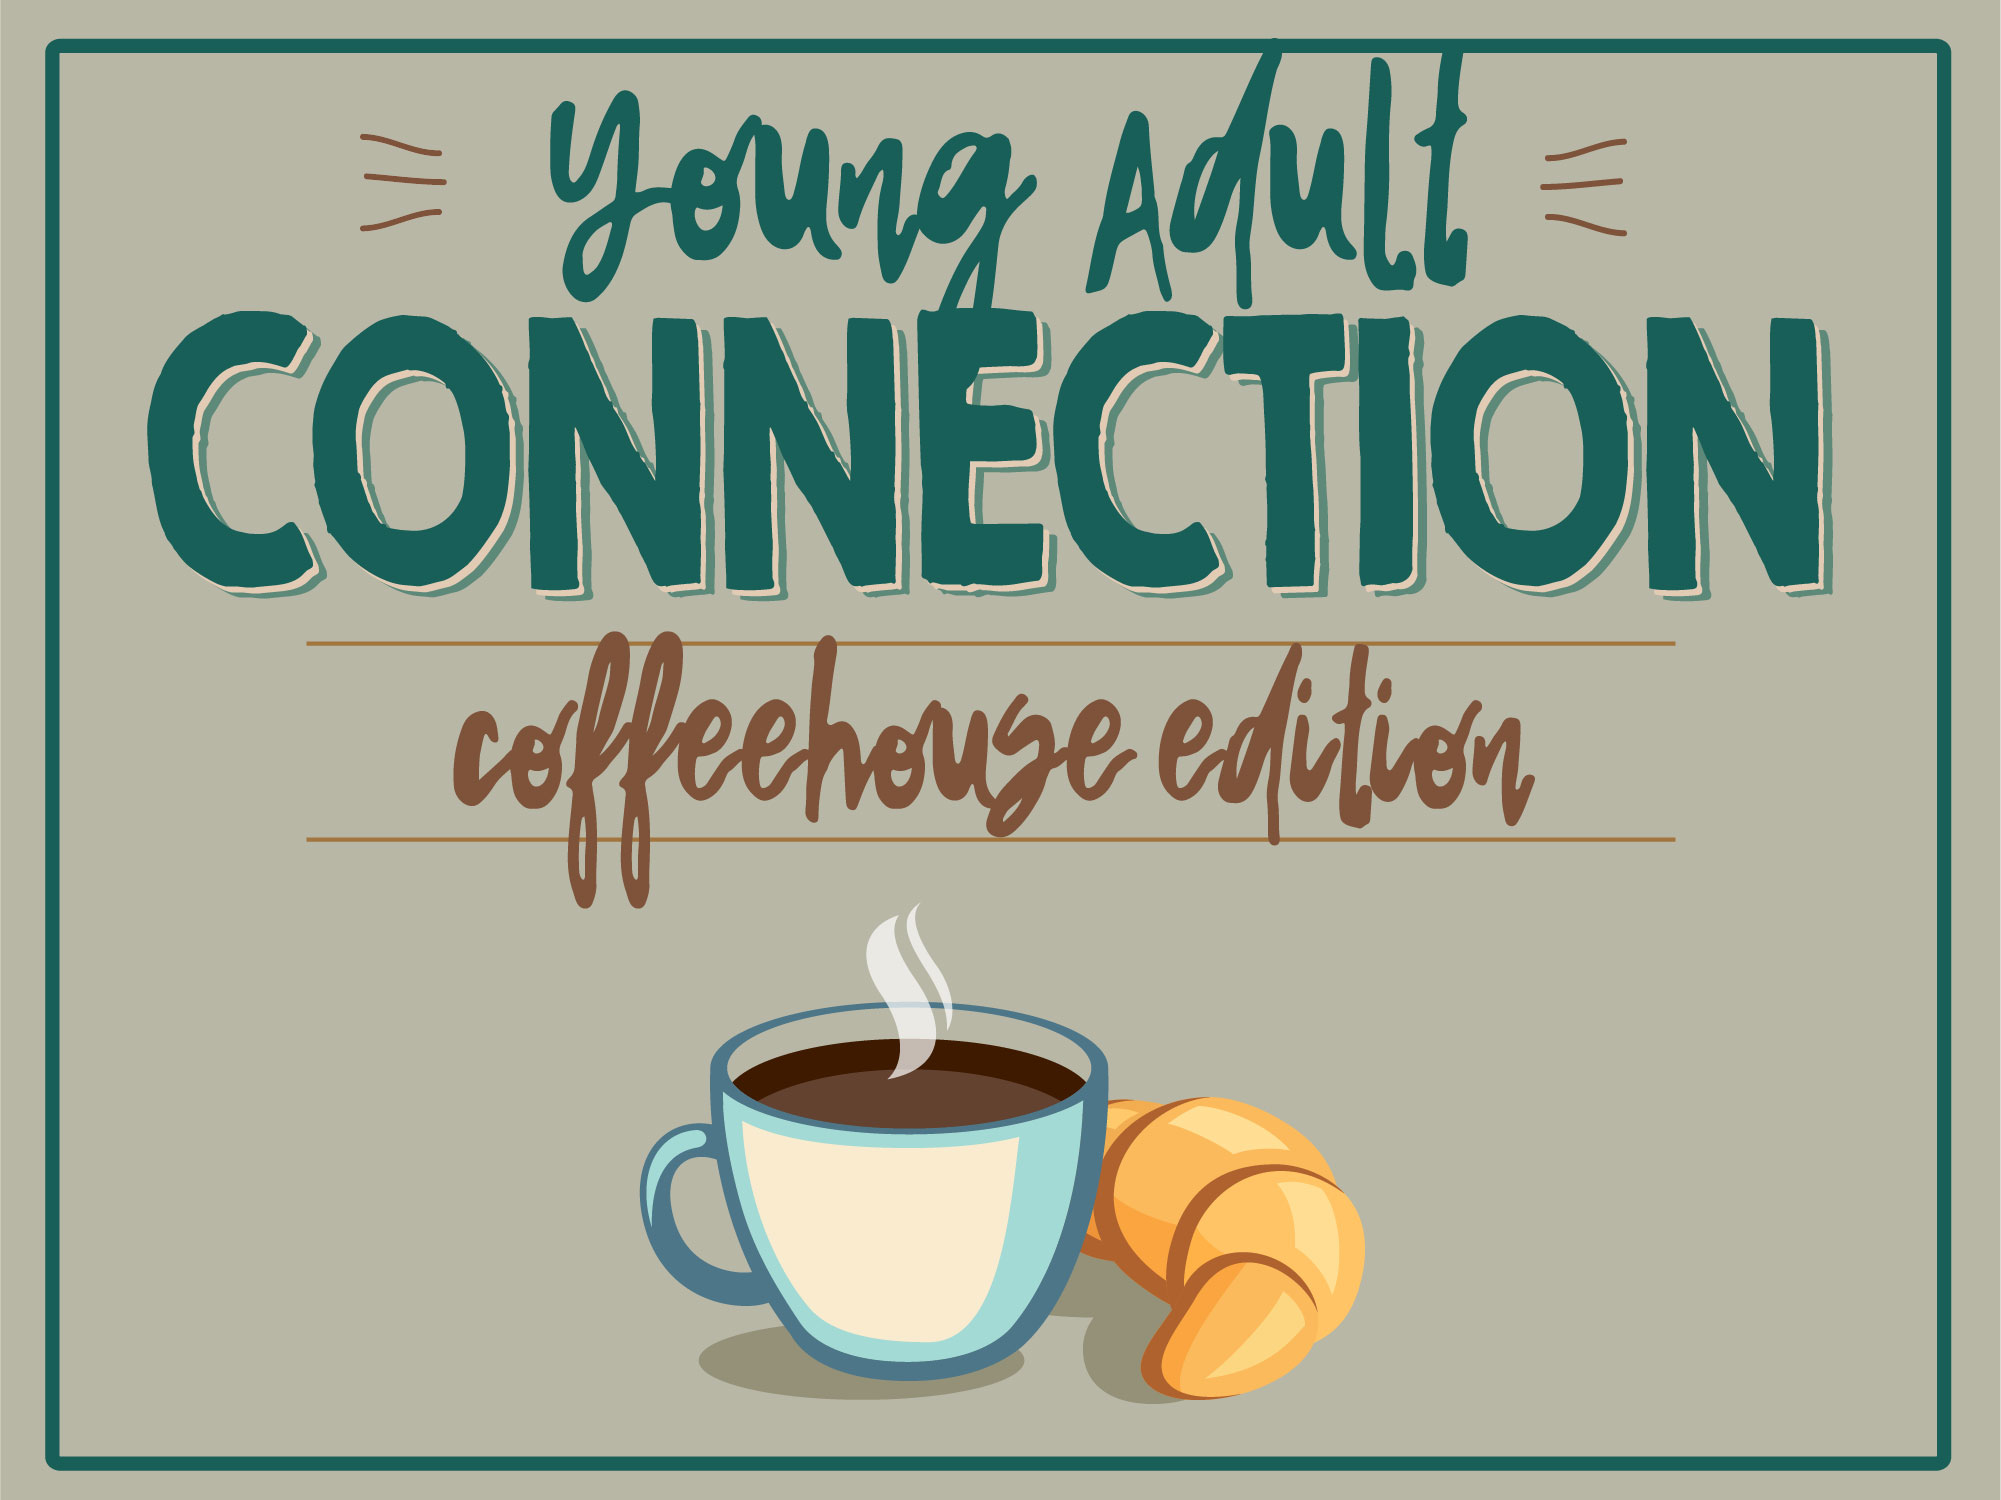 college connection coffeehouse-01.jpg